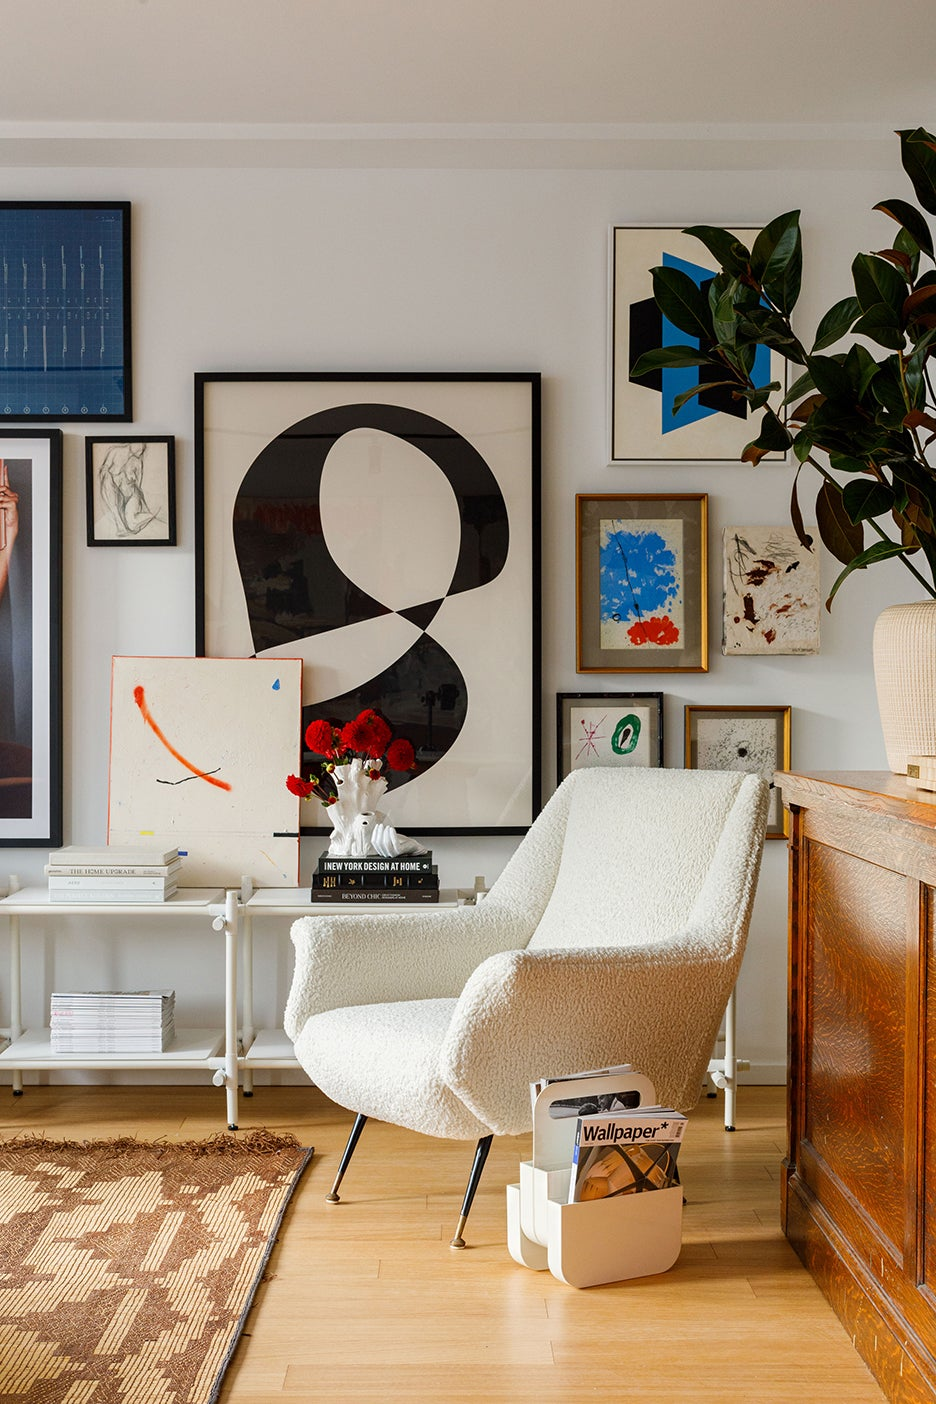 00-FEATURE-Christopher-Kent-chicago-home-tour-domino